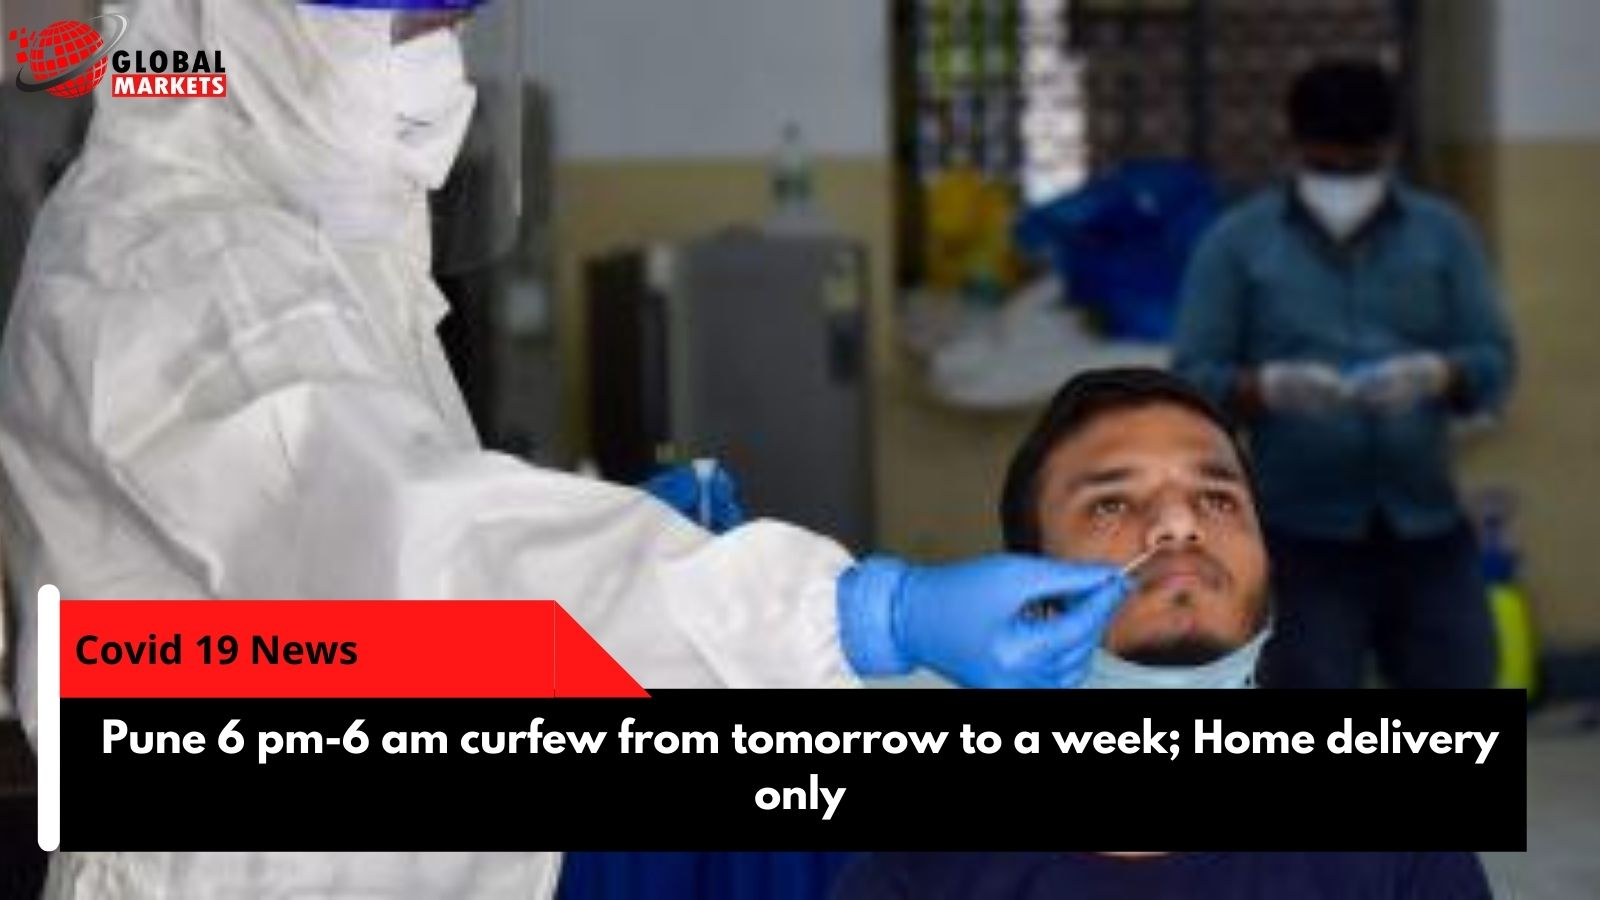 Pune 6 pm-6am curfew from tomorrow to a week; Home delivery only